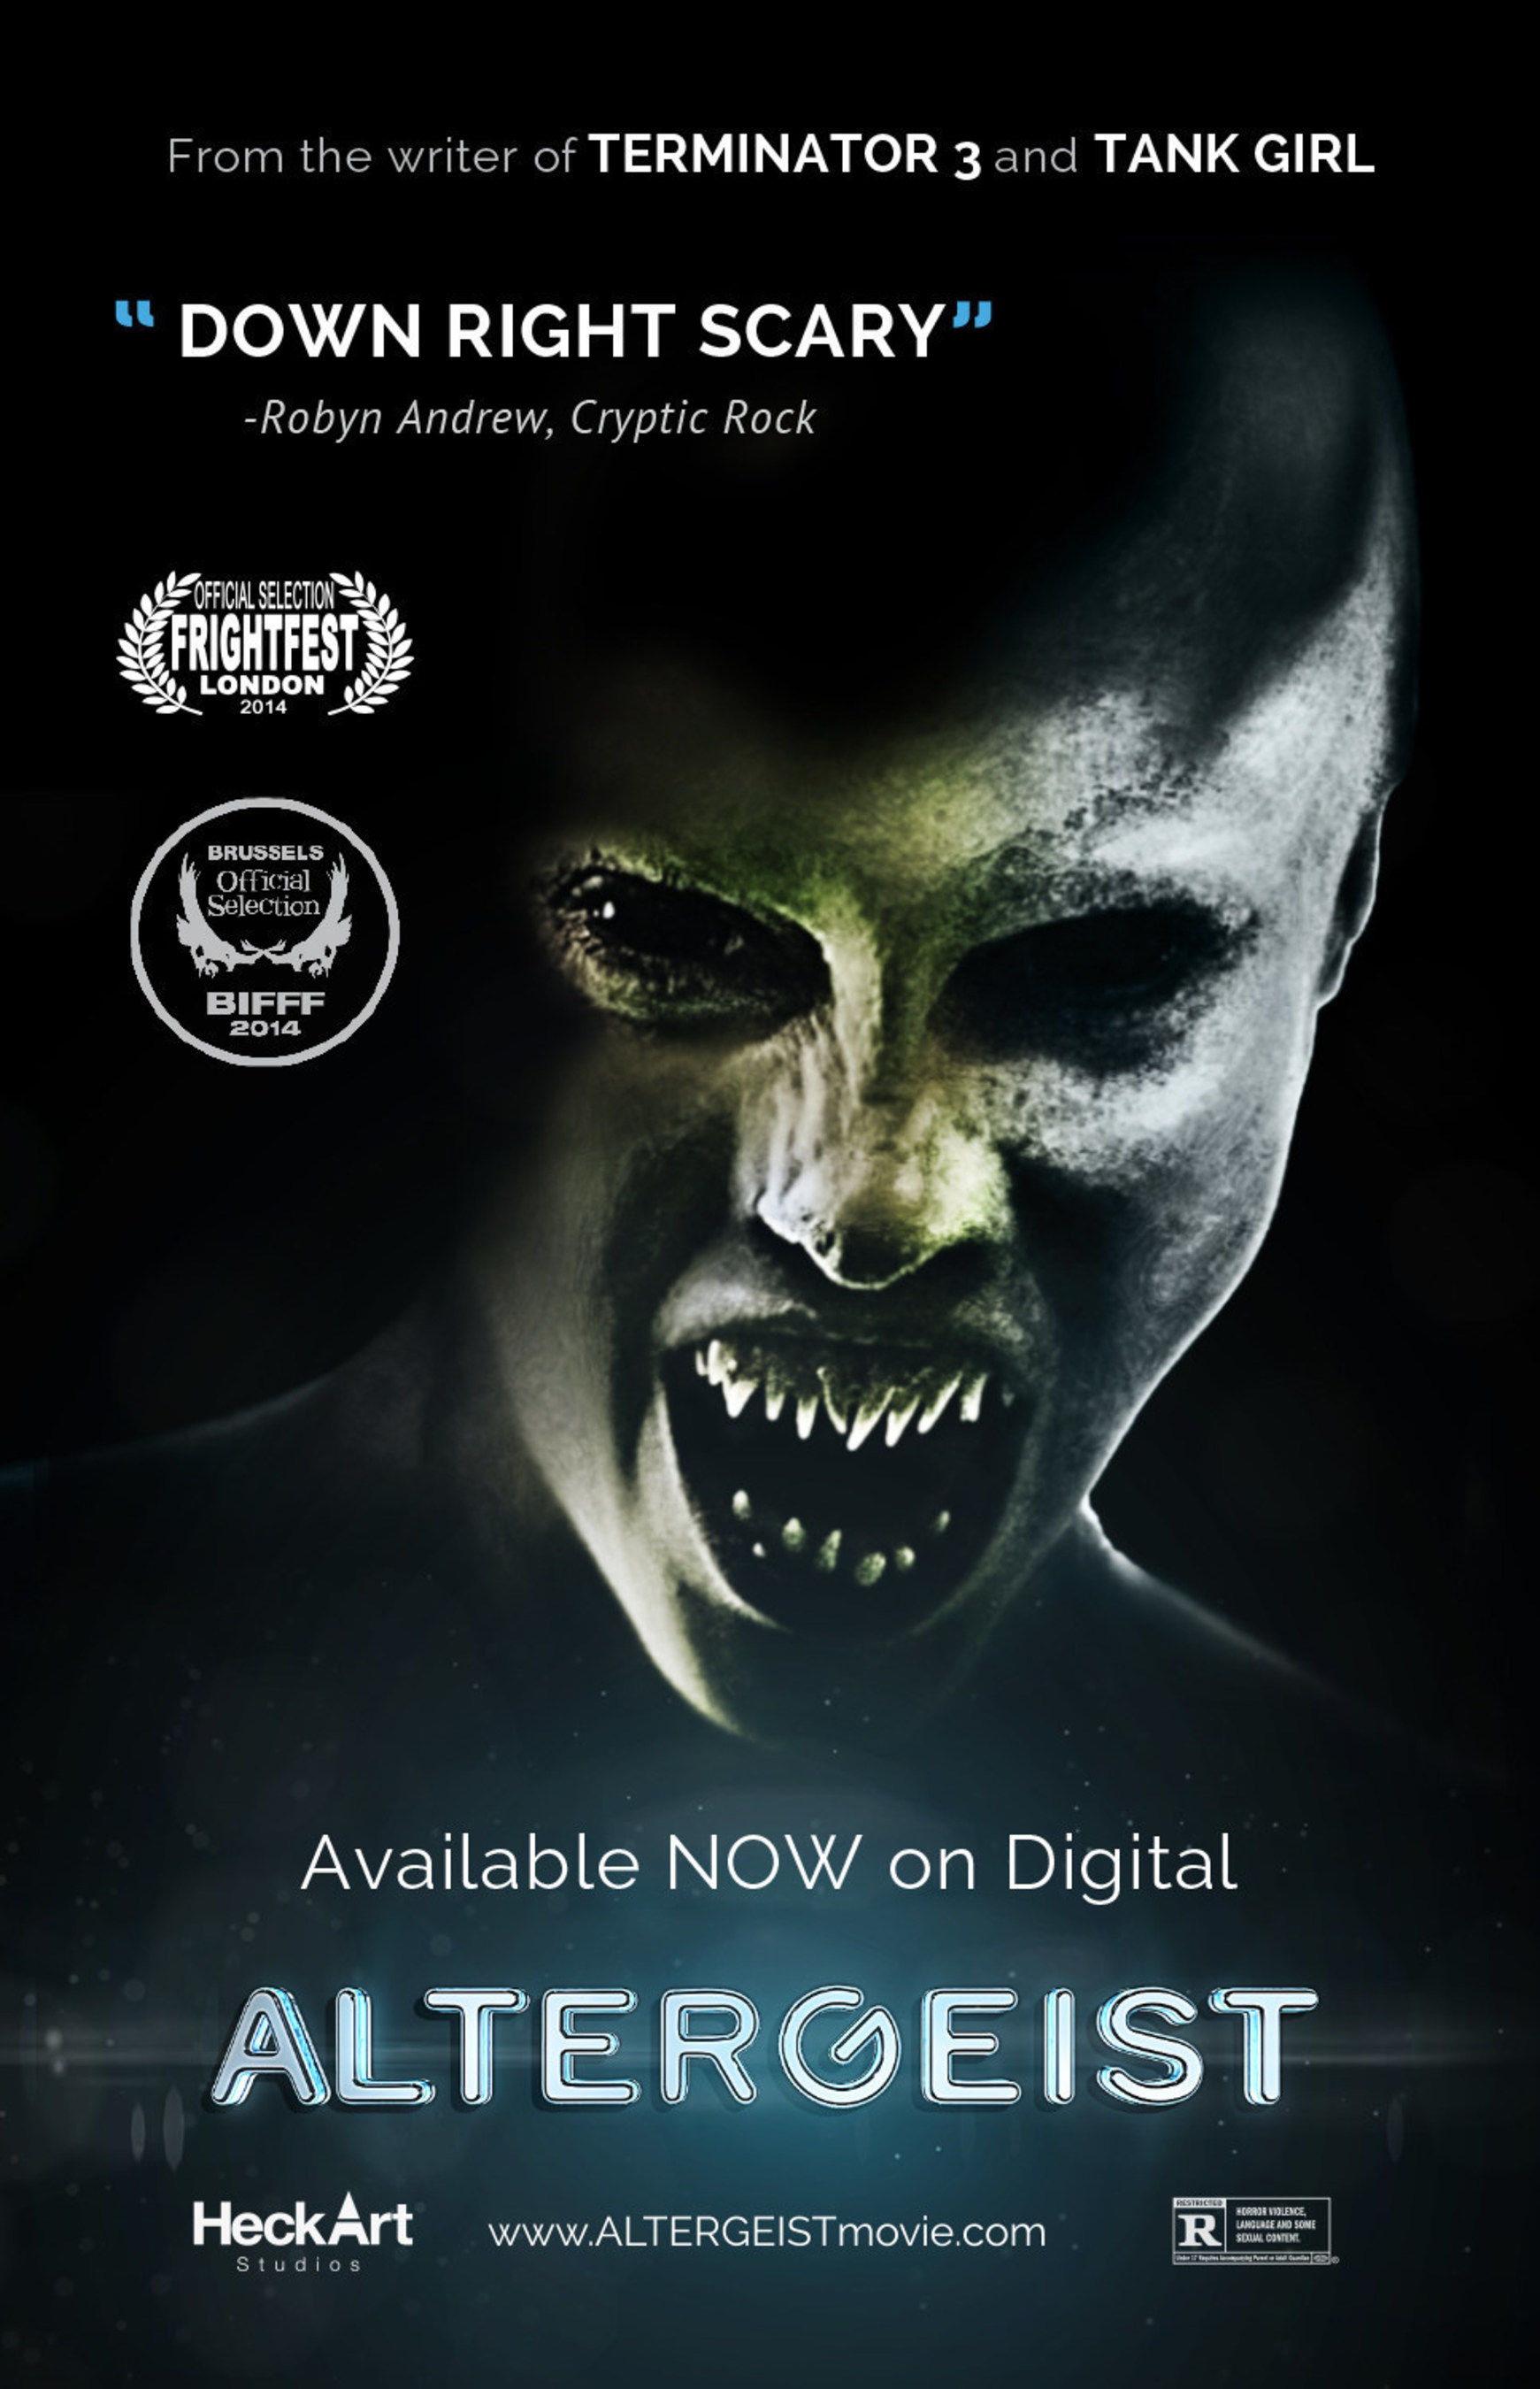 HeckArt Studios and TV4 Entertainment Bring ALTERGEIST to Small Screens Everywhere Just in Time for Halloween